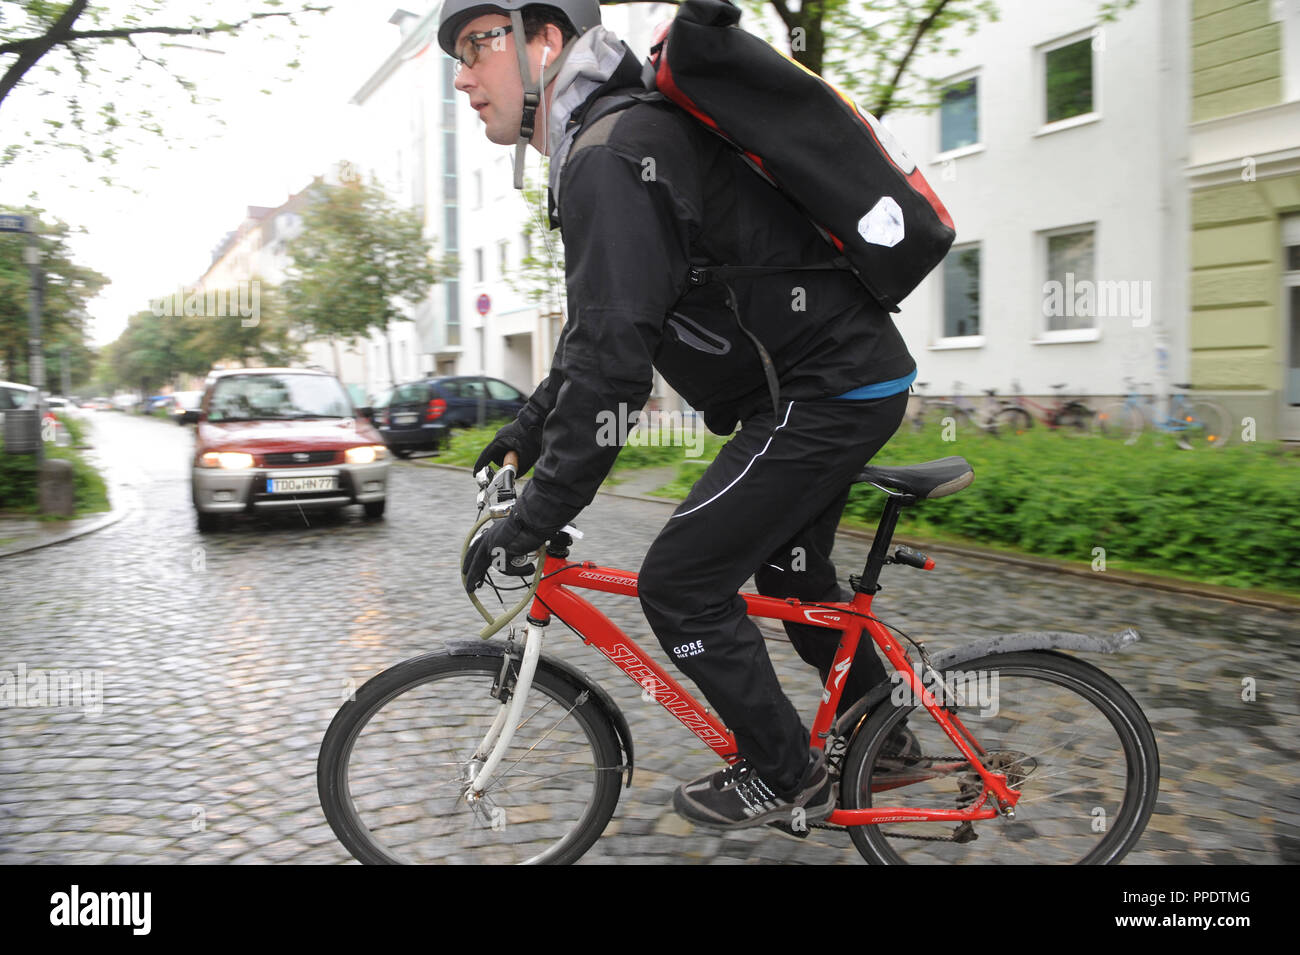 Bicycle Courier Stock Photos & Bicycle Courier Stock Images - Alamy